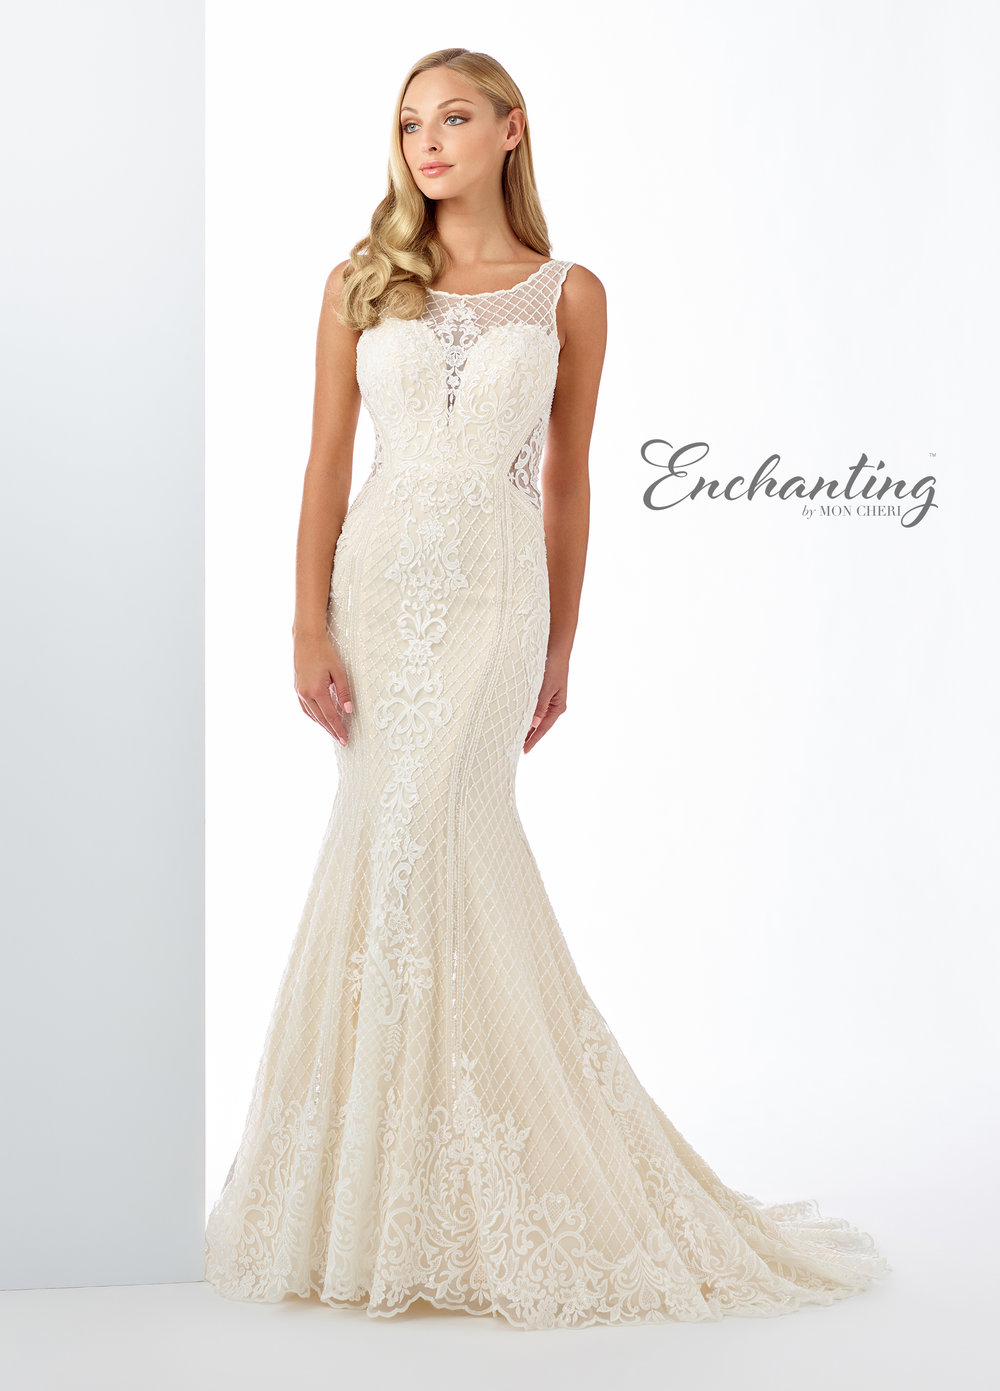 aafbccdbd0 ENCHANTING STYLE #119107 — MESTAD'S BRIDAL AND FORMALWEAR